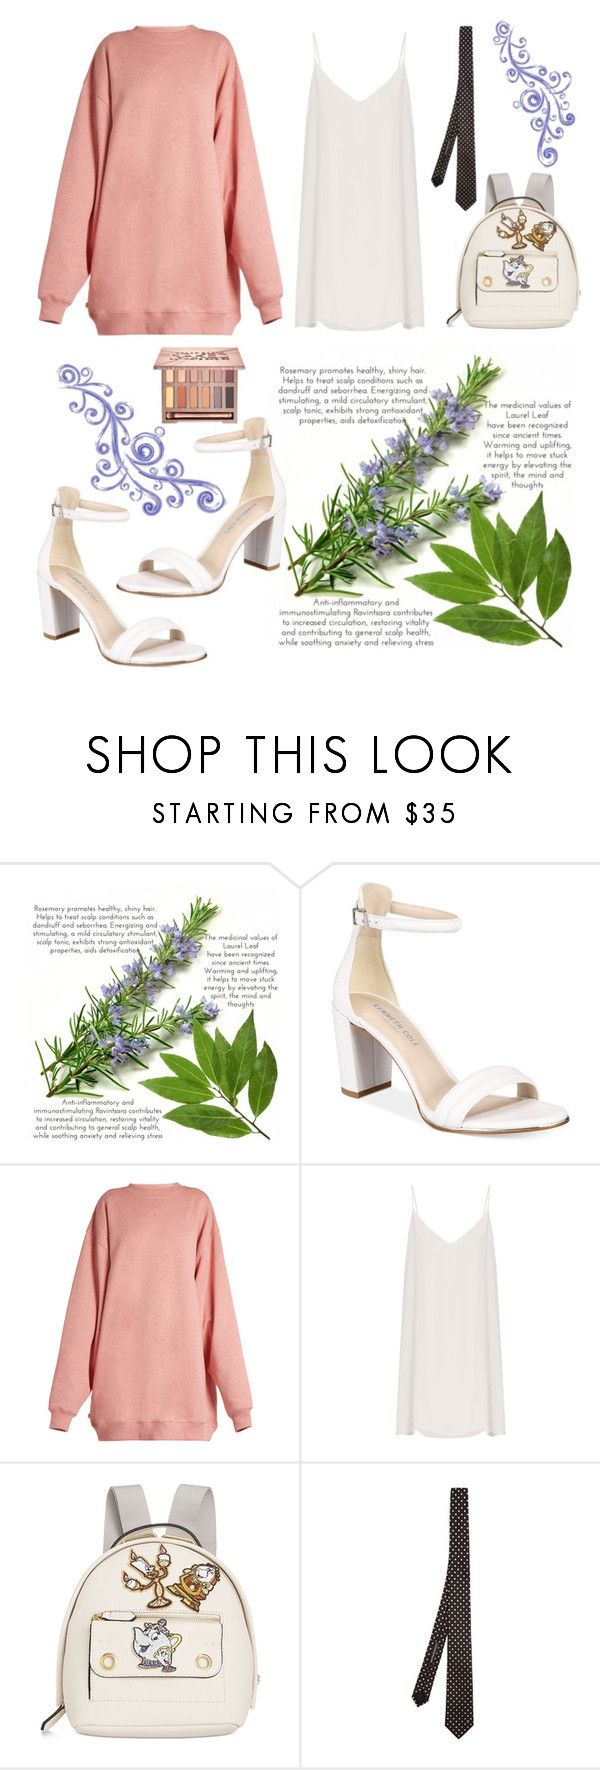 """Step Up: Block heels"" by ohbente ❤ liked on Polyvore featuring Kenneth Cole, Acne Studios, Raey, Danielle Nicole, Alexander McQueen and Urban Decay"